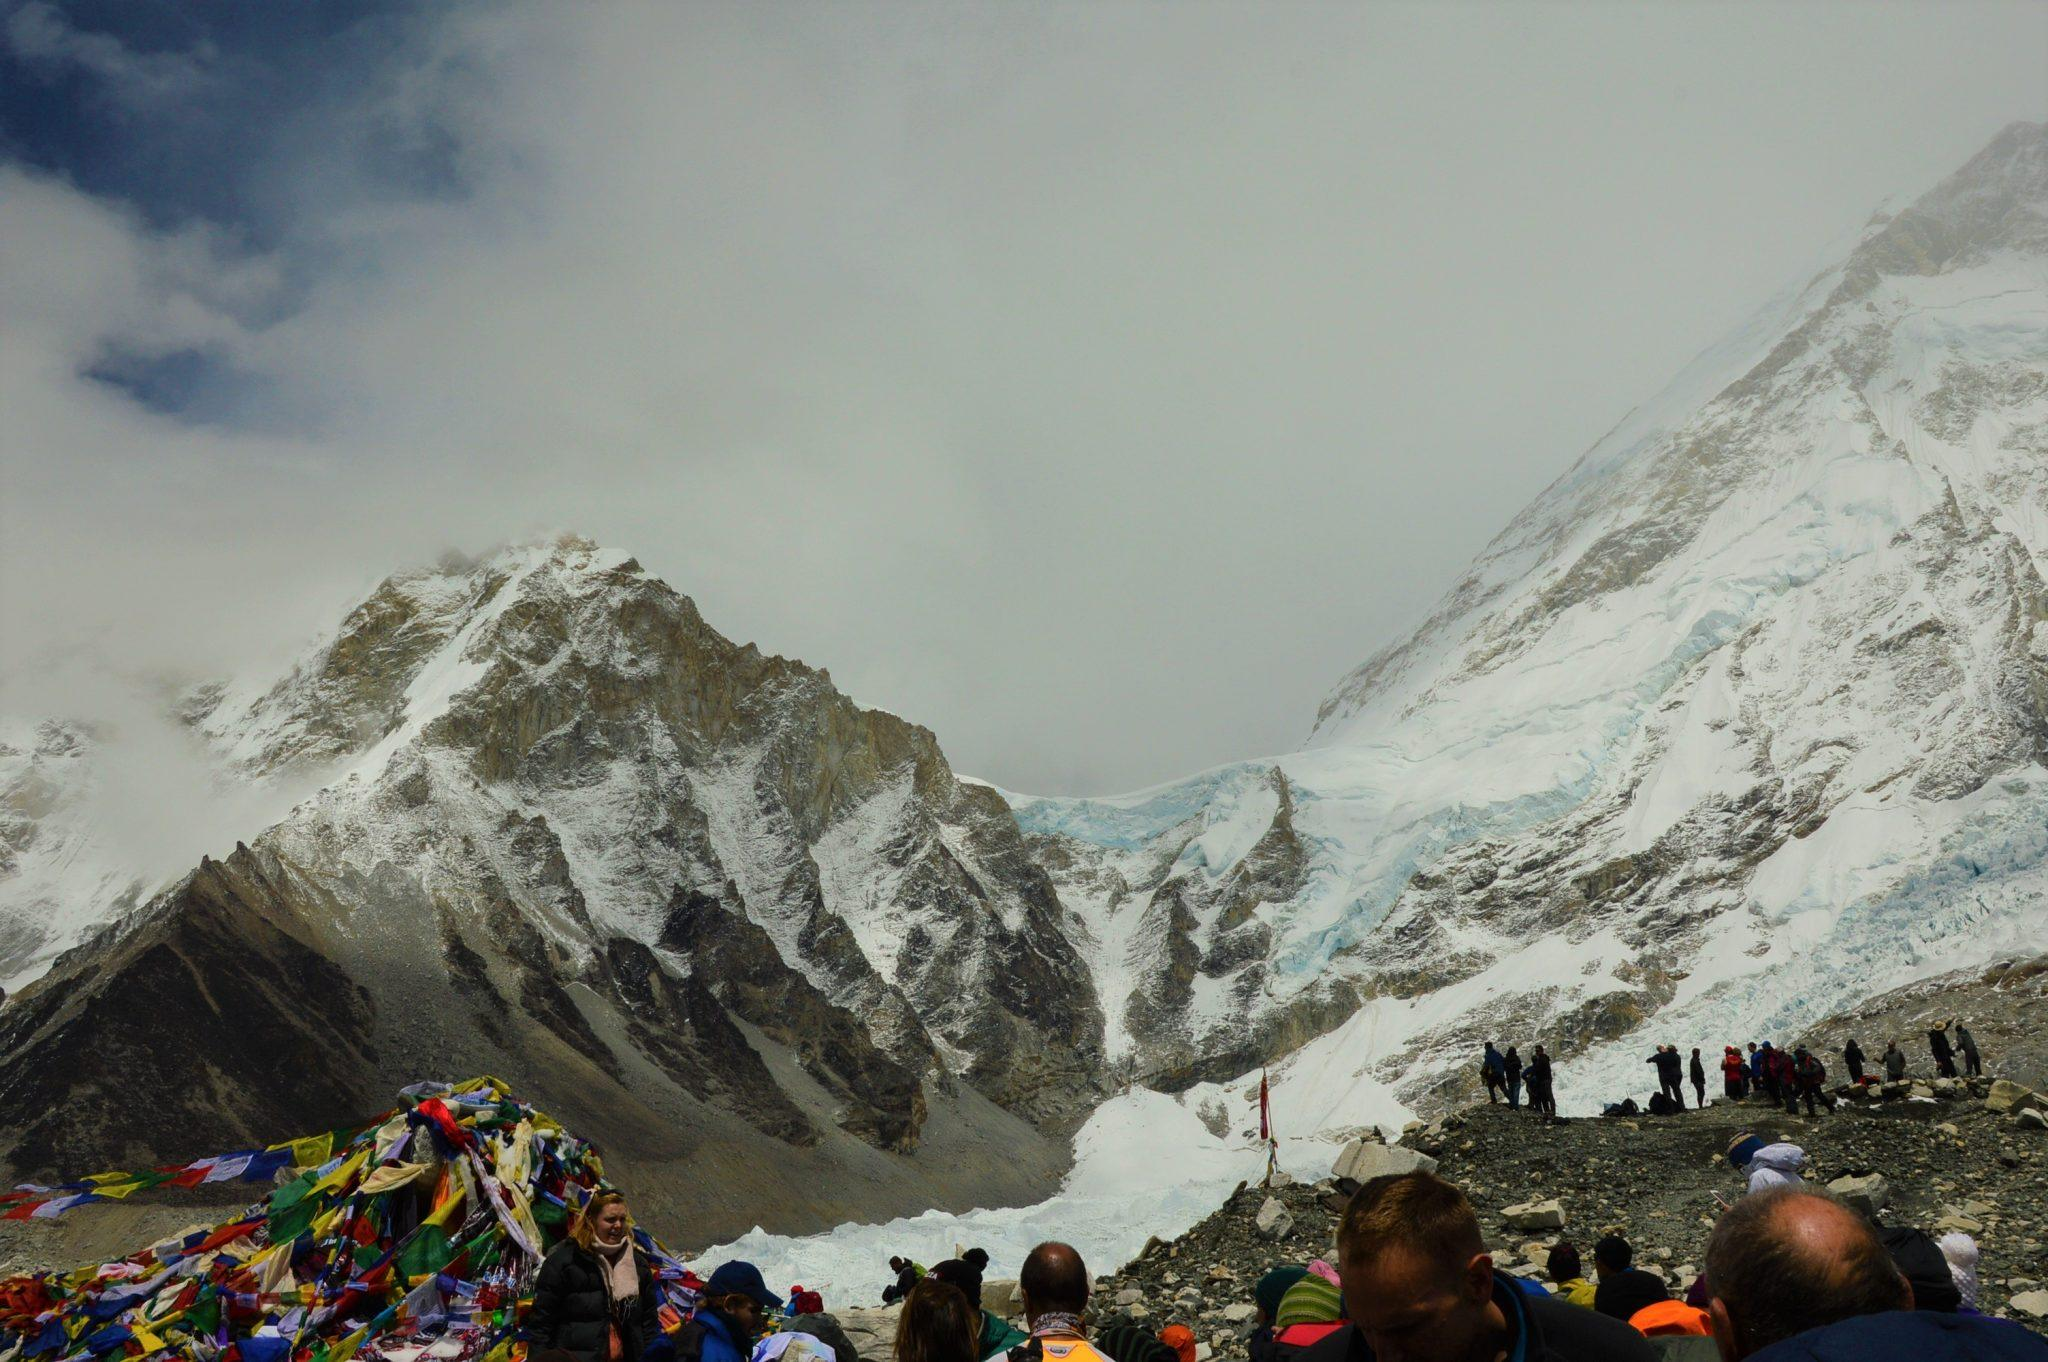 everest base camp with mountains and khumbu ice fall in the background